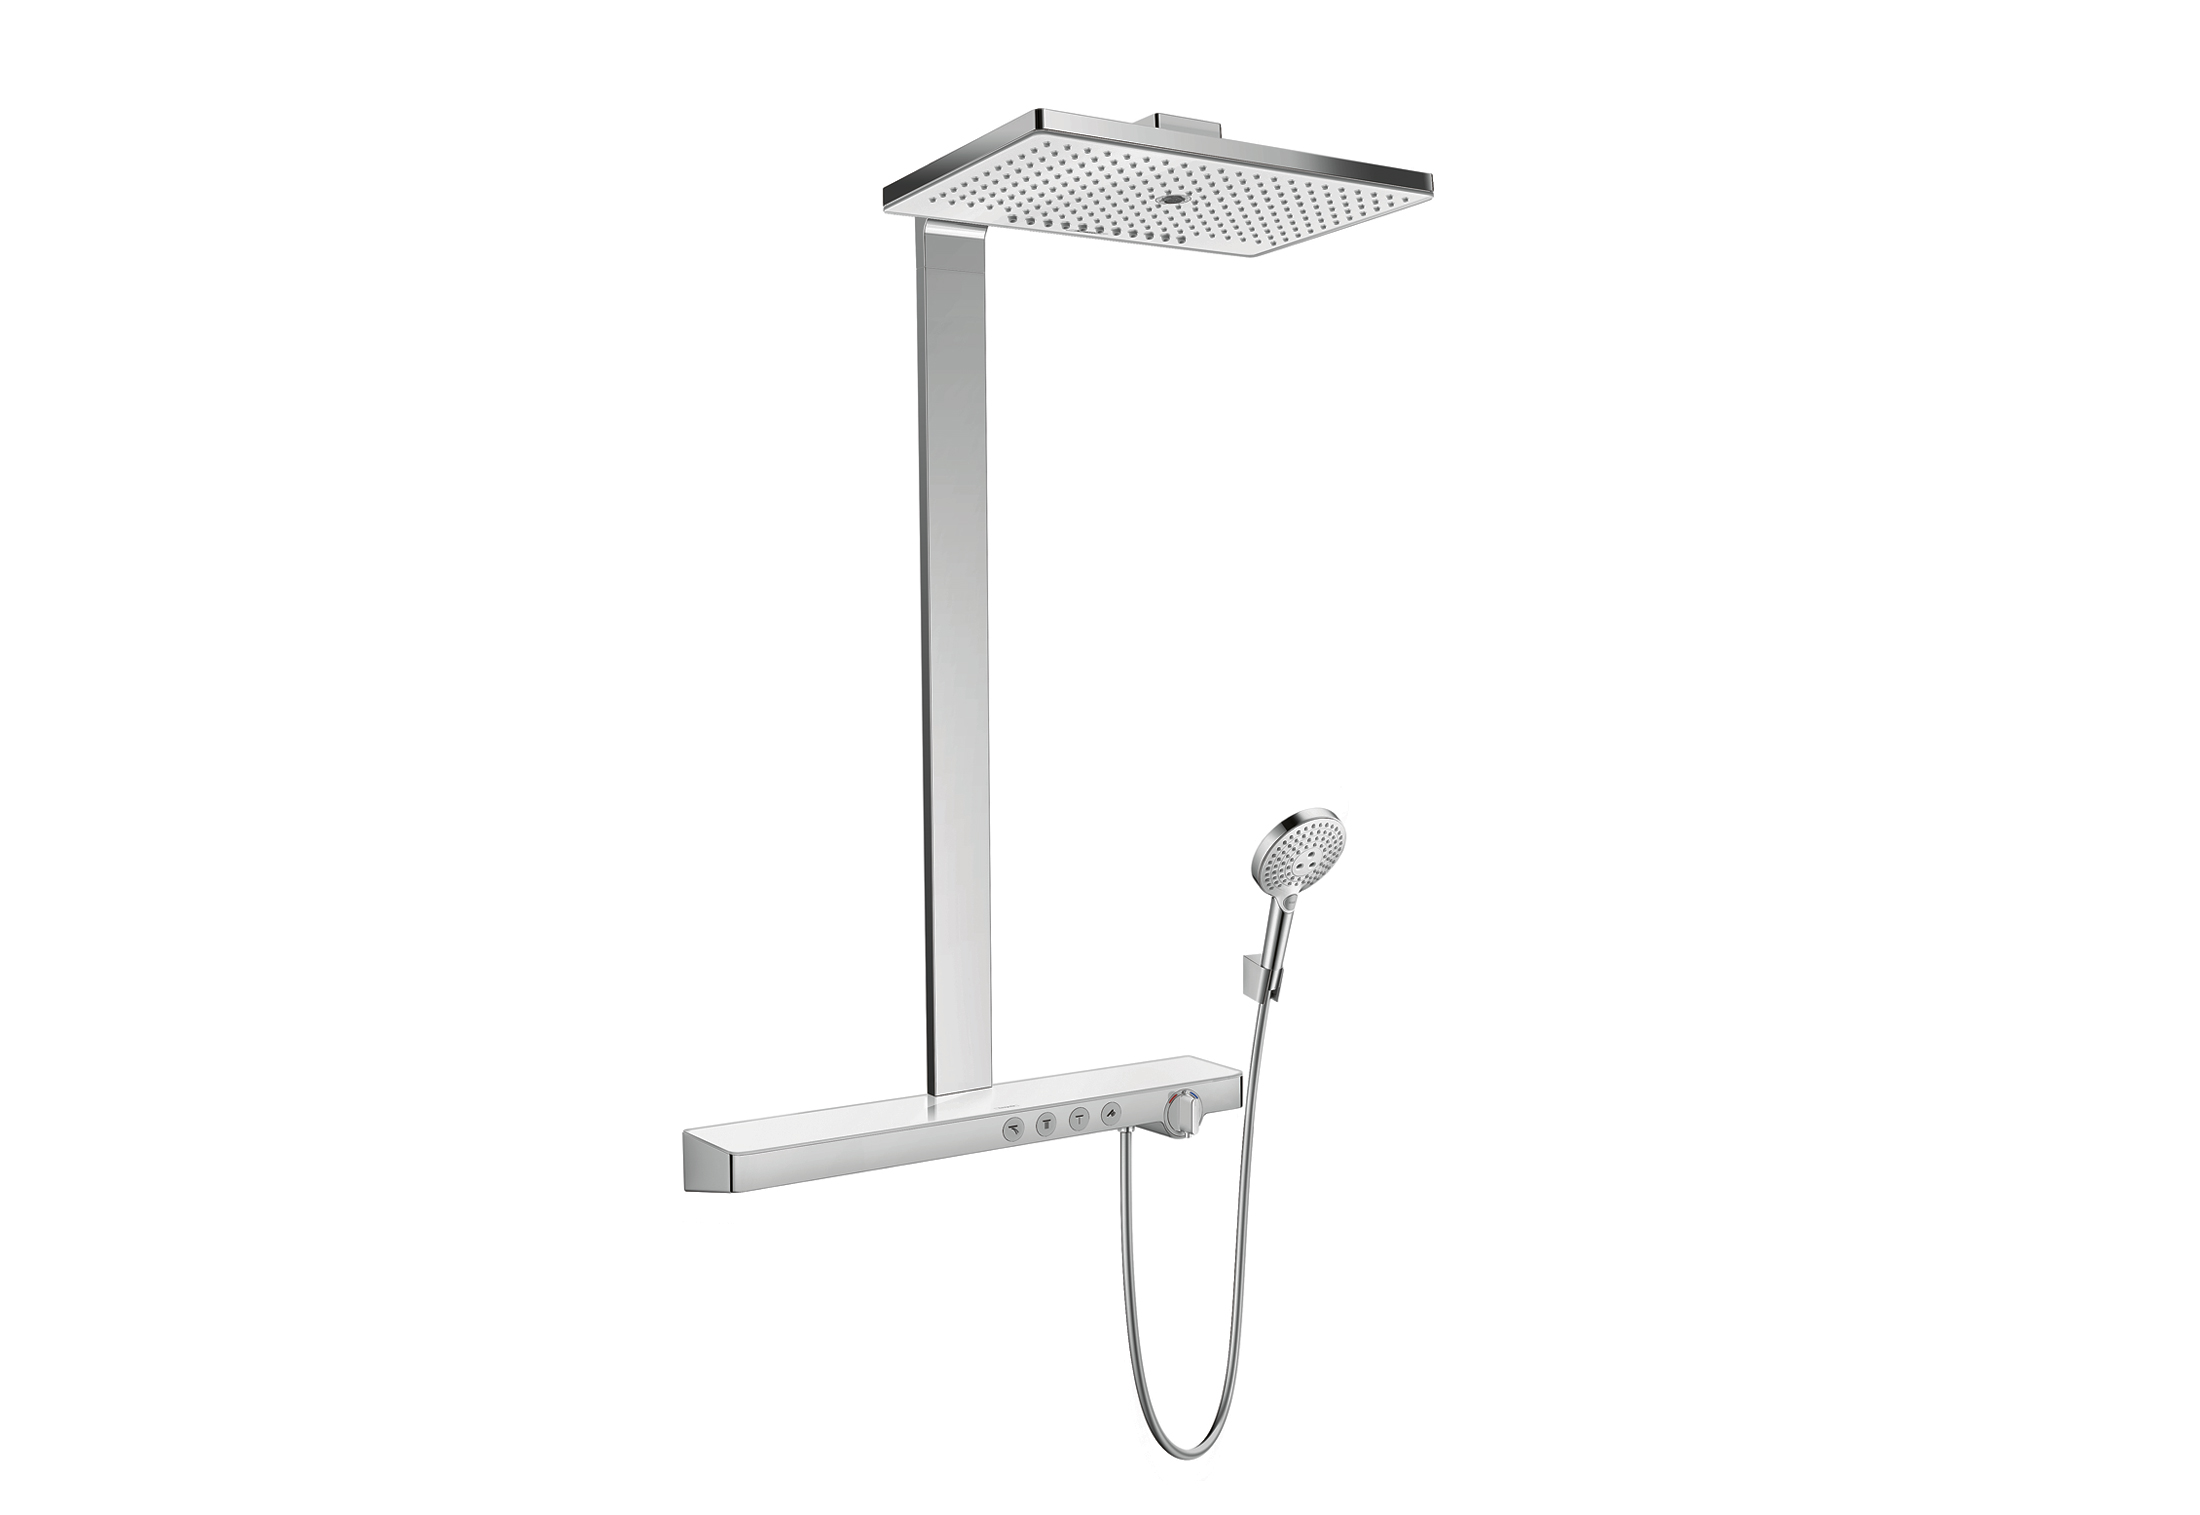 rainmaker select showerpipe 3jet raindance select s120 von hansgrohe stylepark. Black Bedroom Furniture Sets. Home Design Ideas